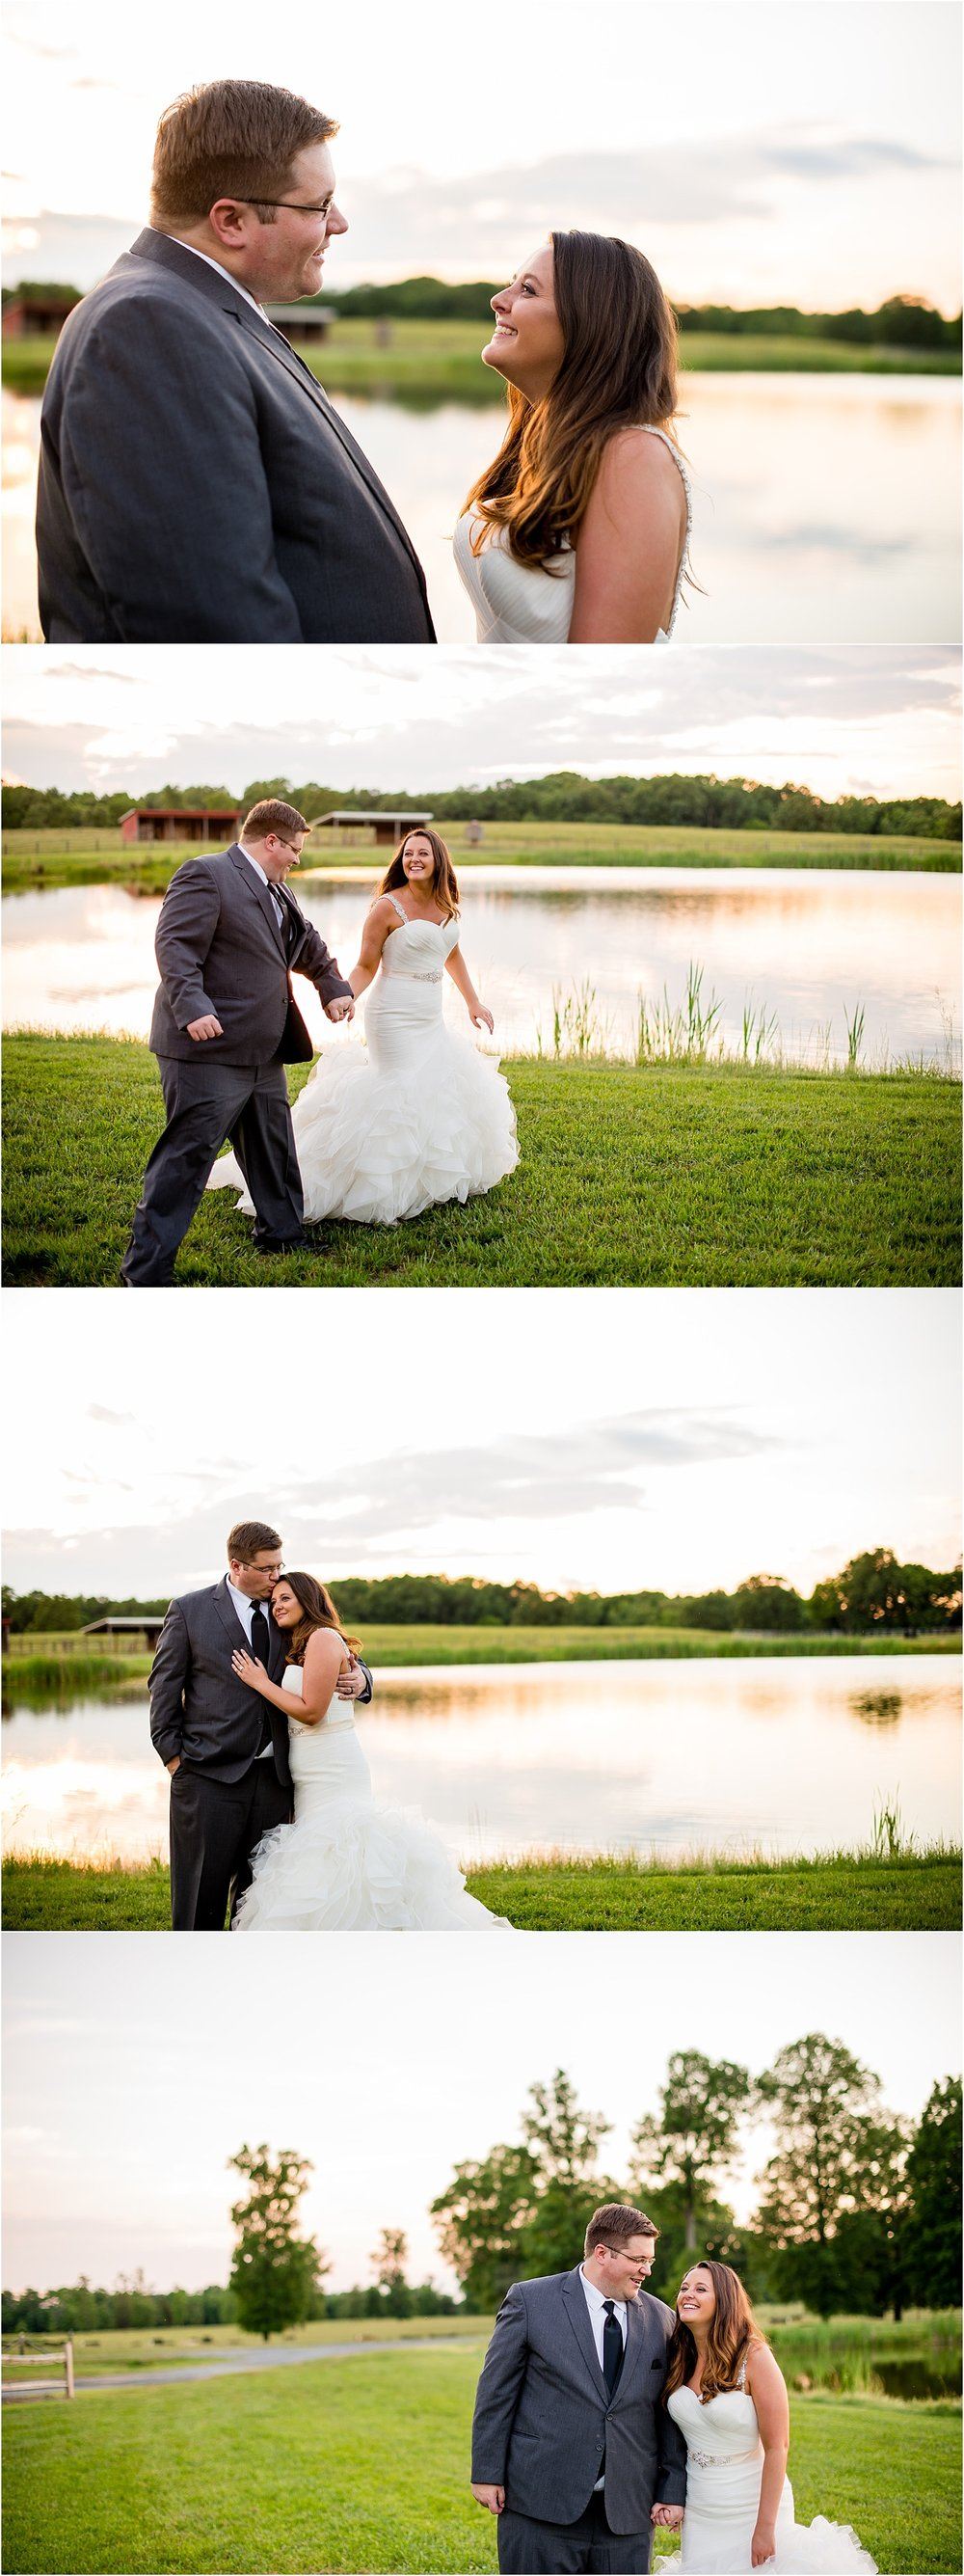 Brittany-Josh-Golden-Hour-Sunset-Bridal-Bride-Groom-Photos-Southern-Spring-Wedding